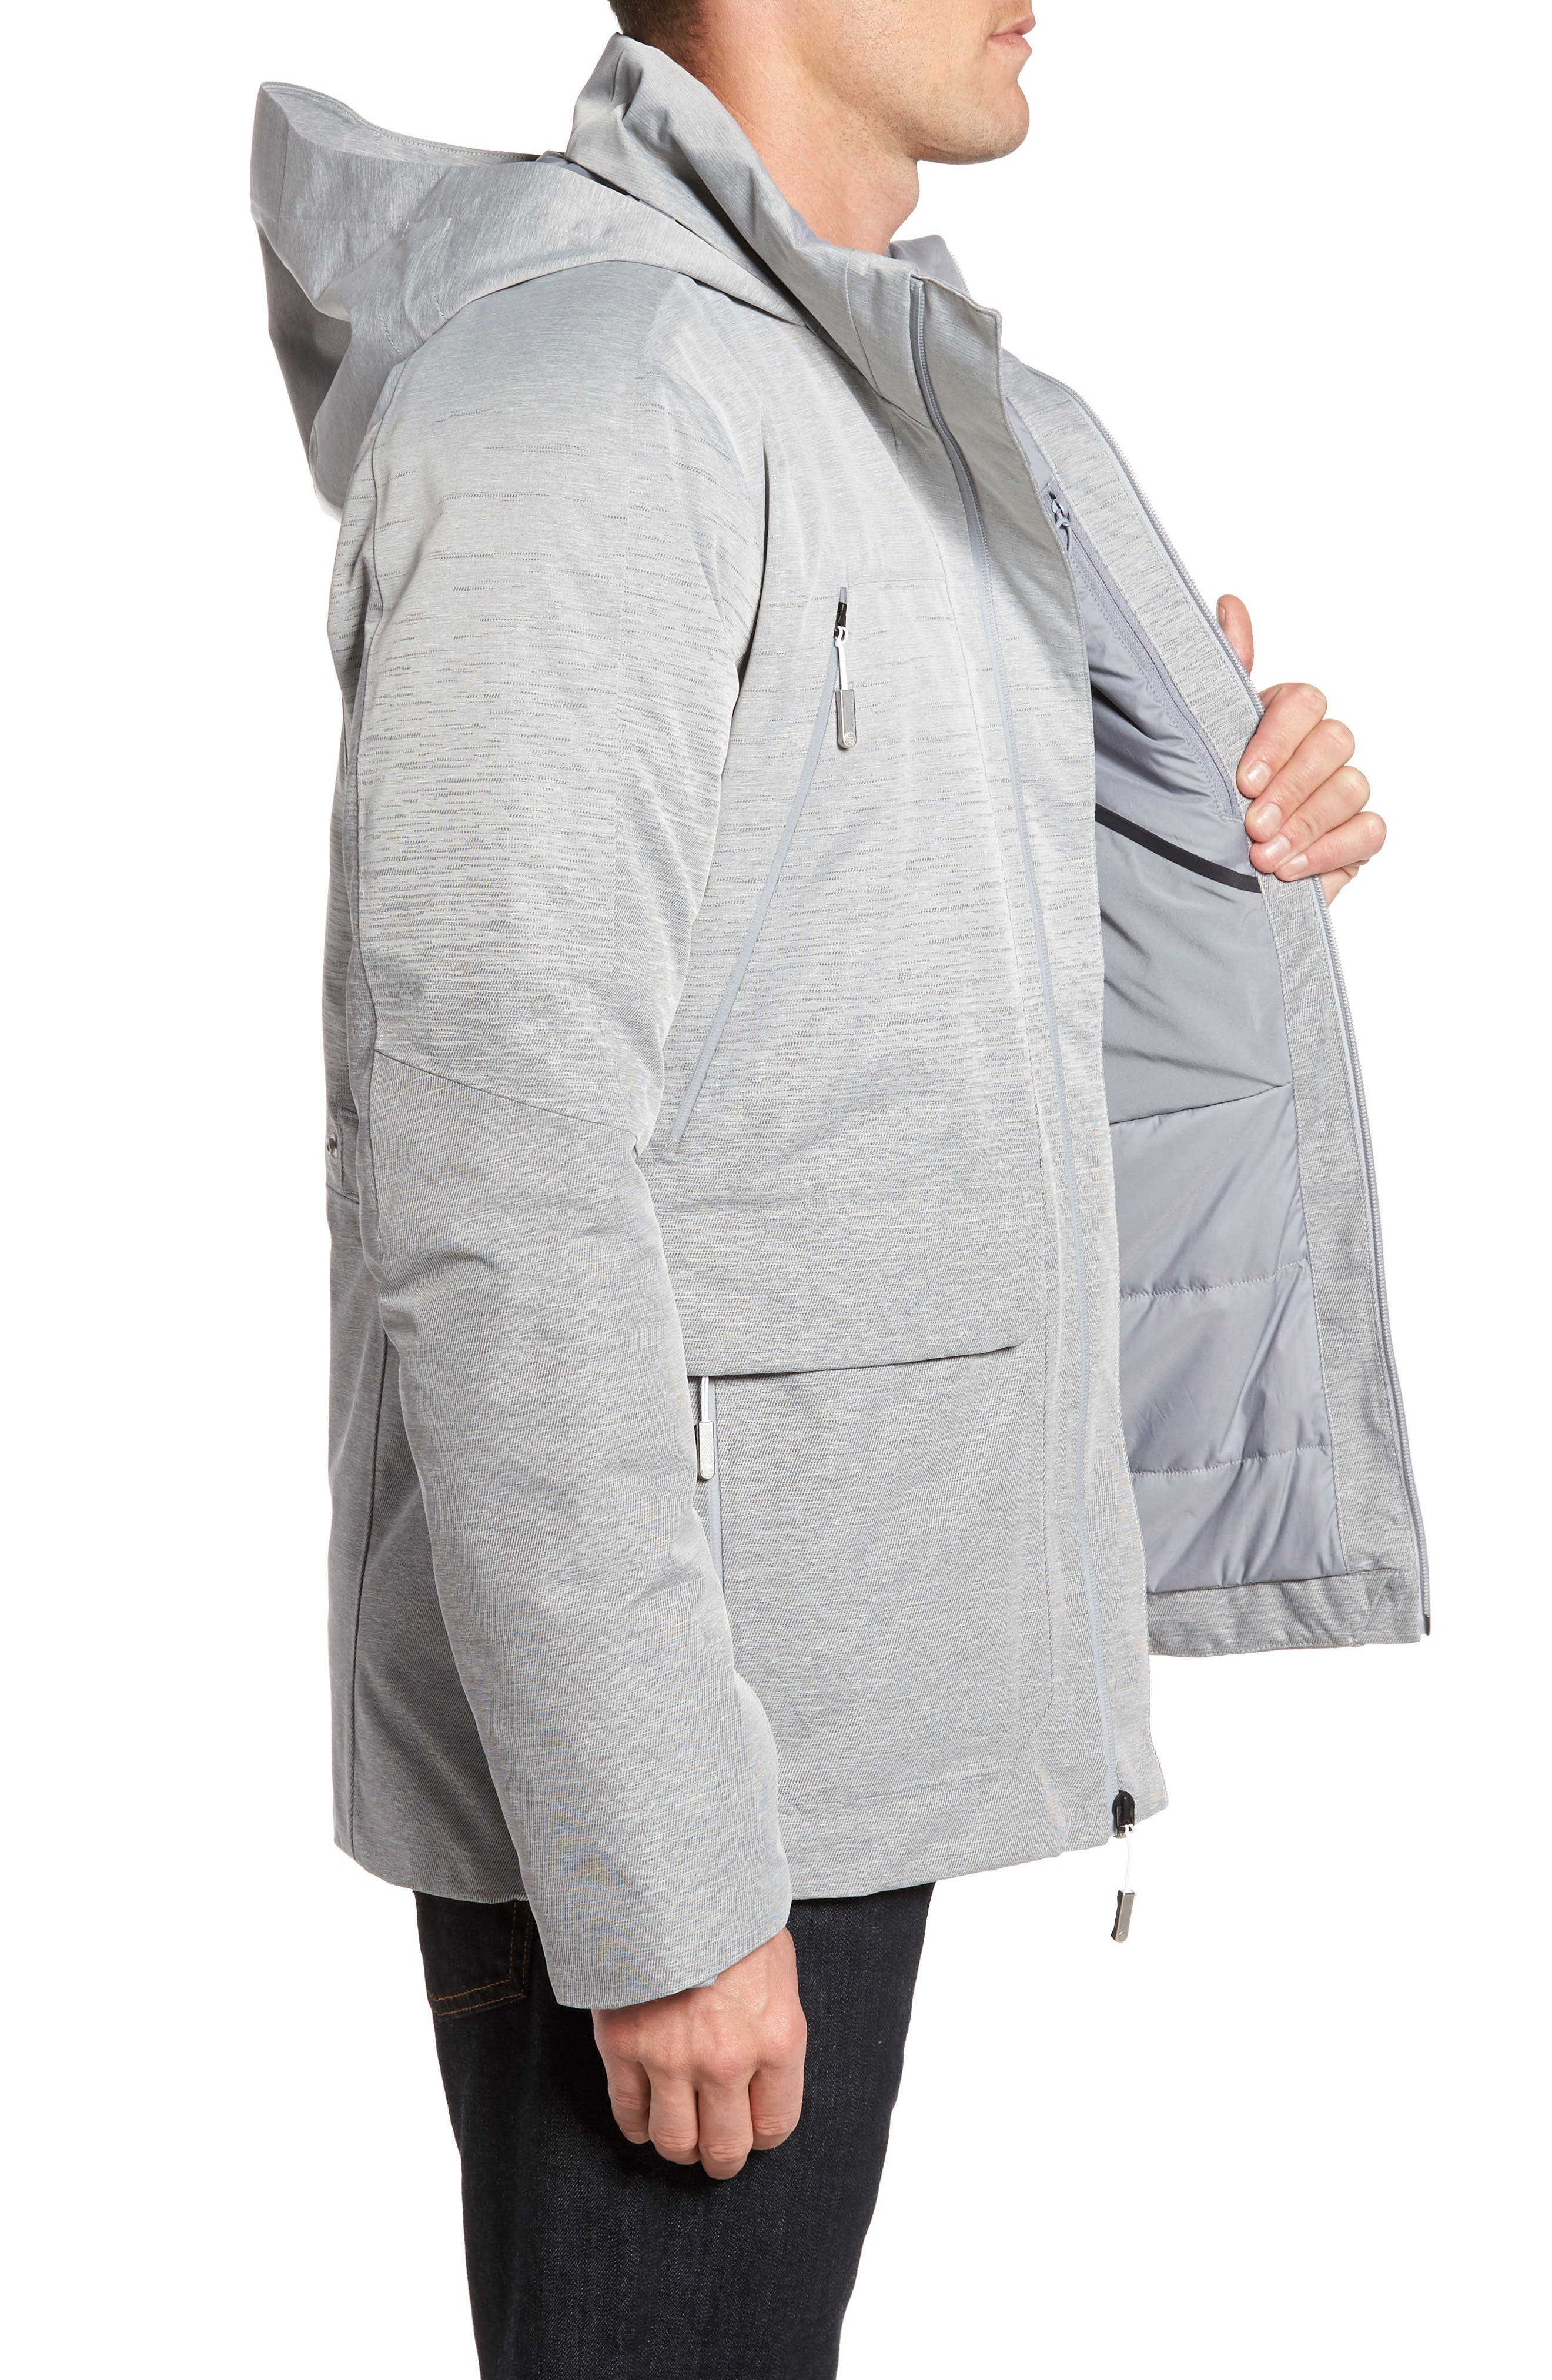 THE NORTH FACE,                             Cryos Gore-Tex<sup>®</sup> Jacket,                             Alternate thumbnail 3, color,                             030